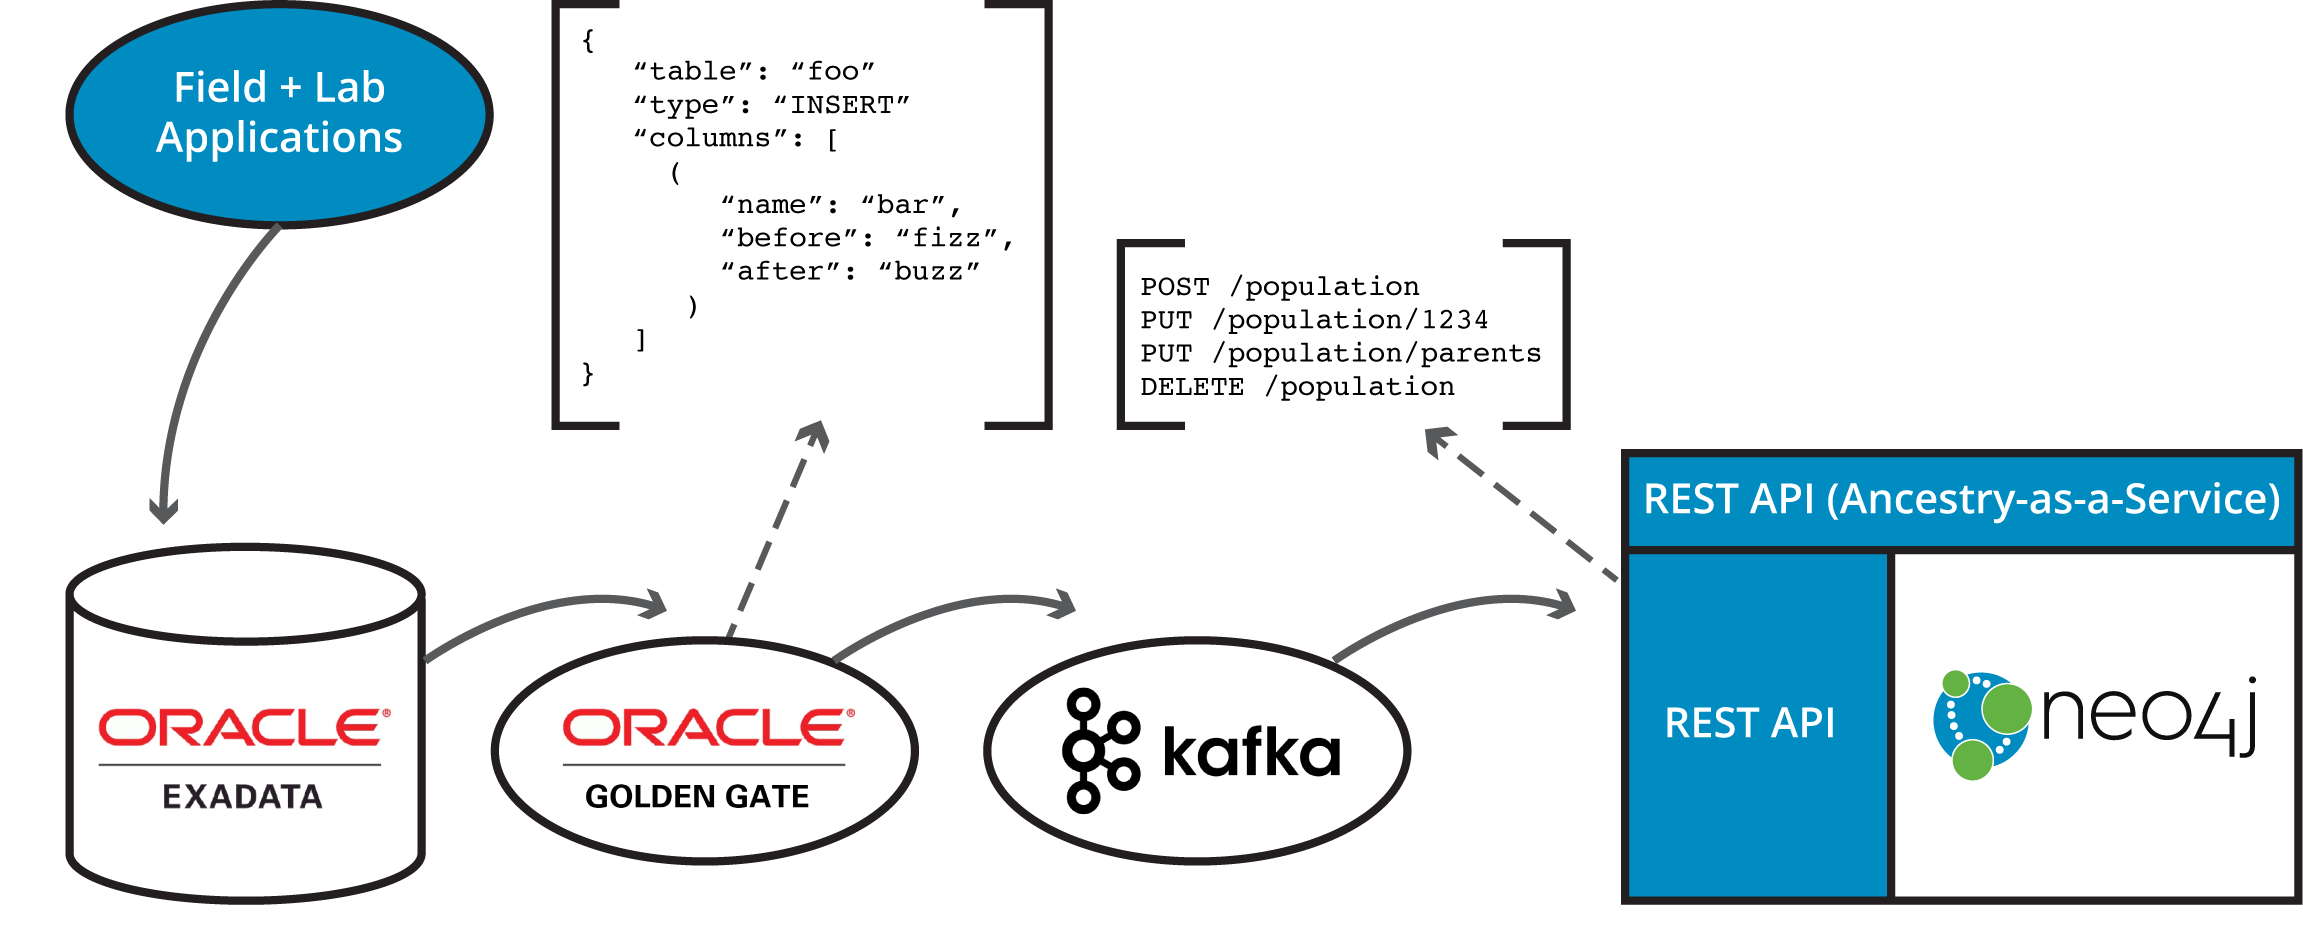 Learn how and why to fully synchronize your relational and graph data between Oracle RDBMS and Neo4j